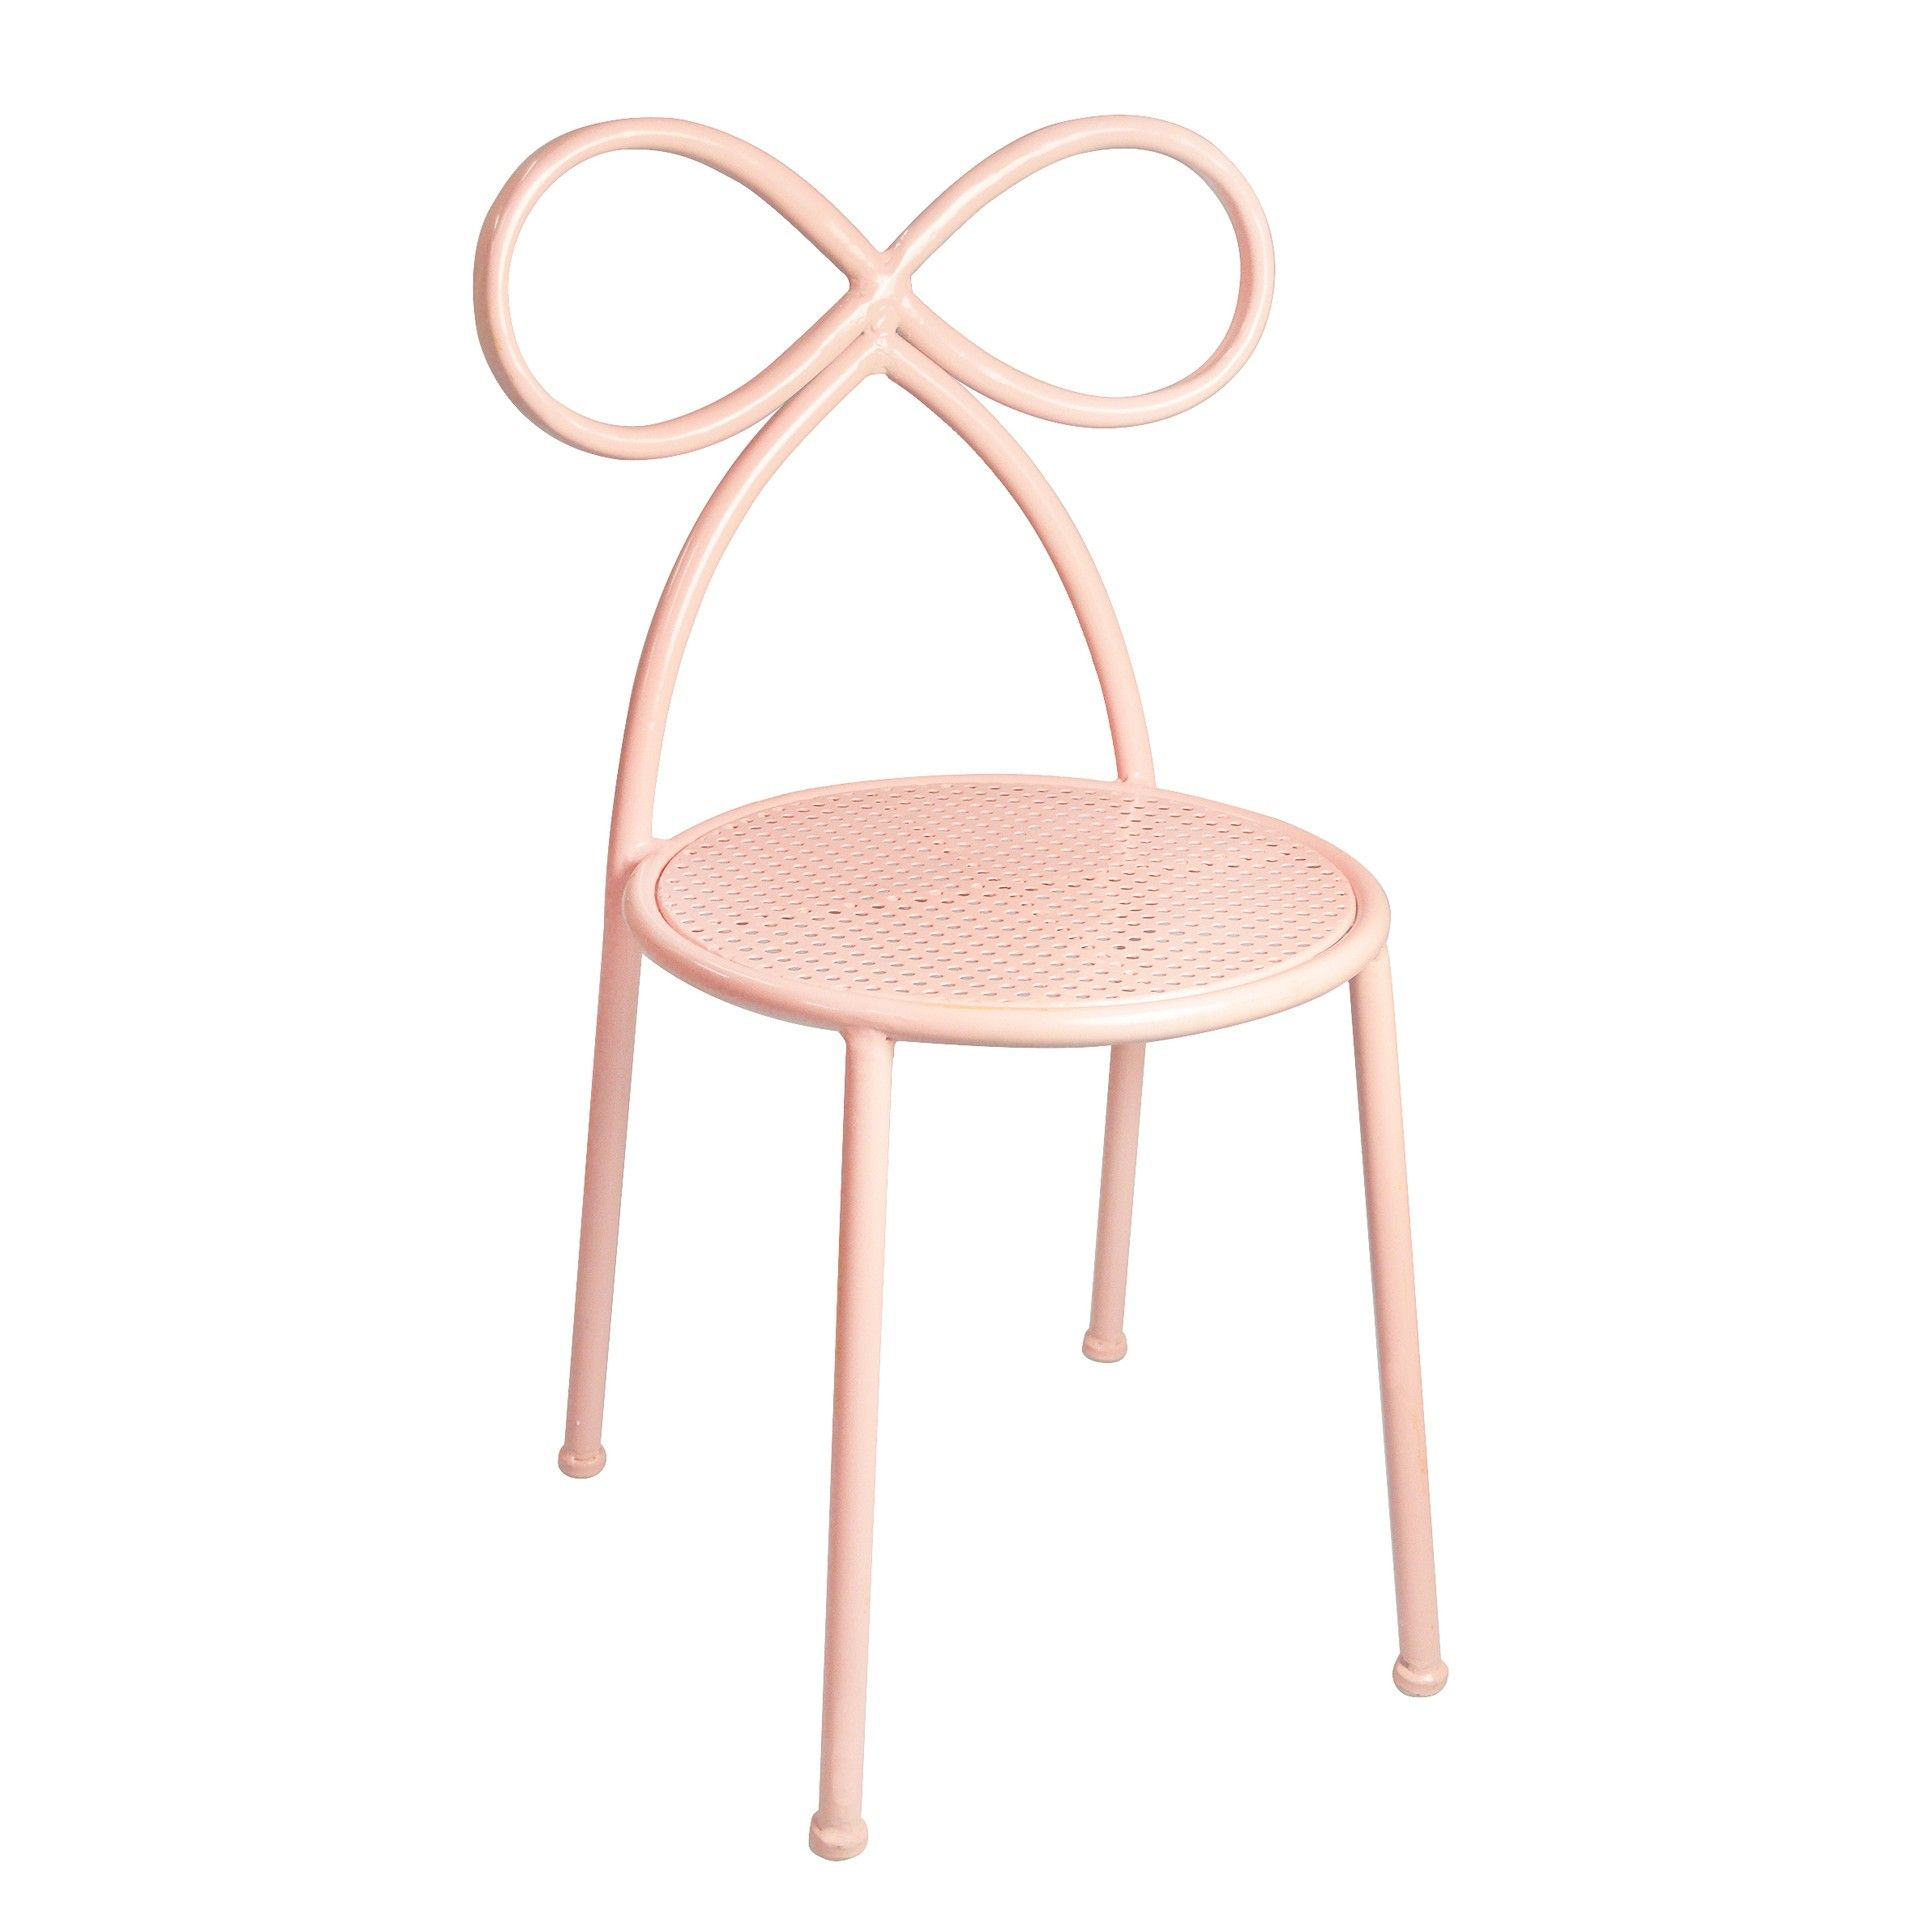 Pink Kids Chair Wheelchair History Designstuff Proudly Stocking Beautiful Blush Children S Bow Available Online Now